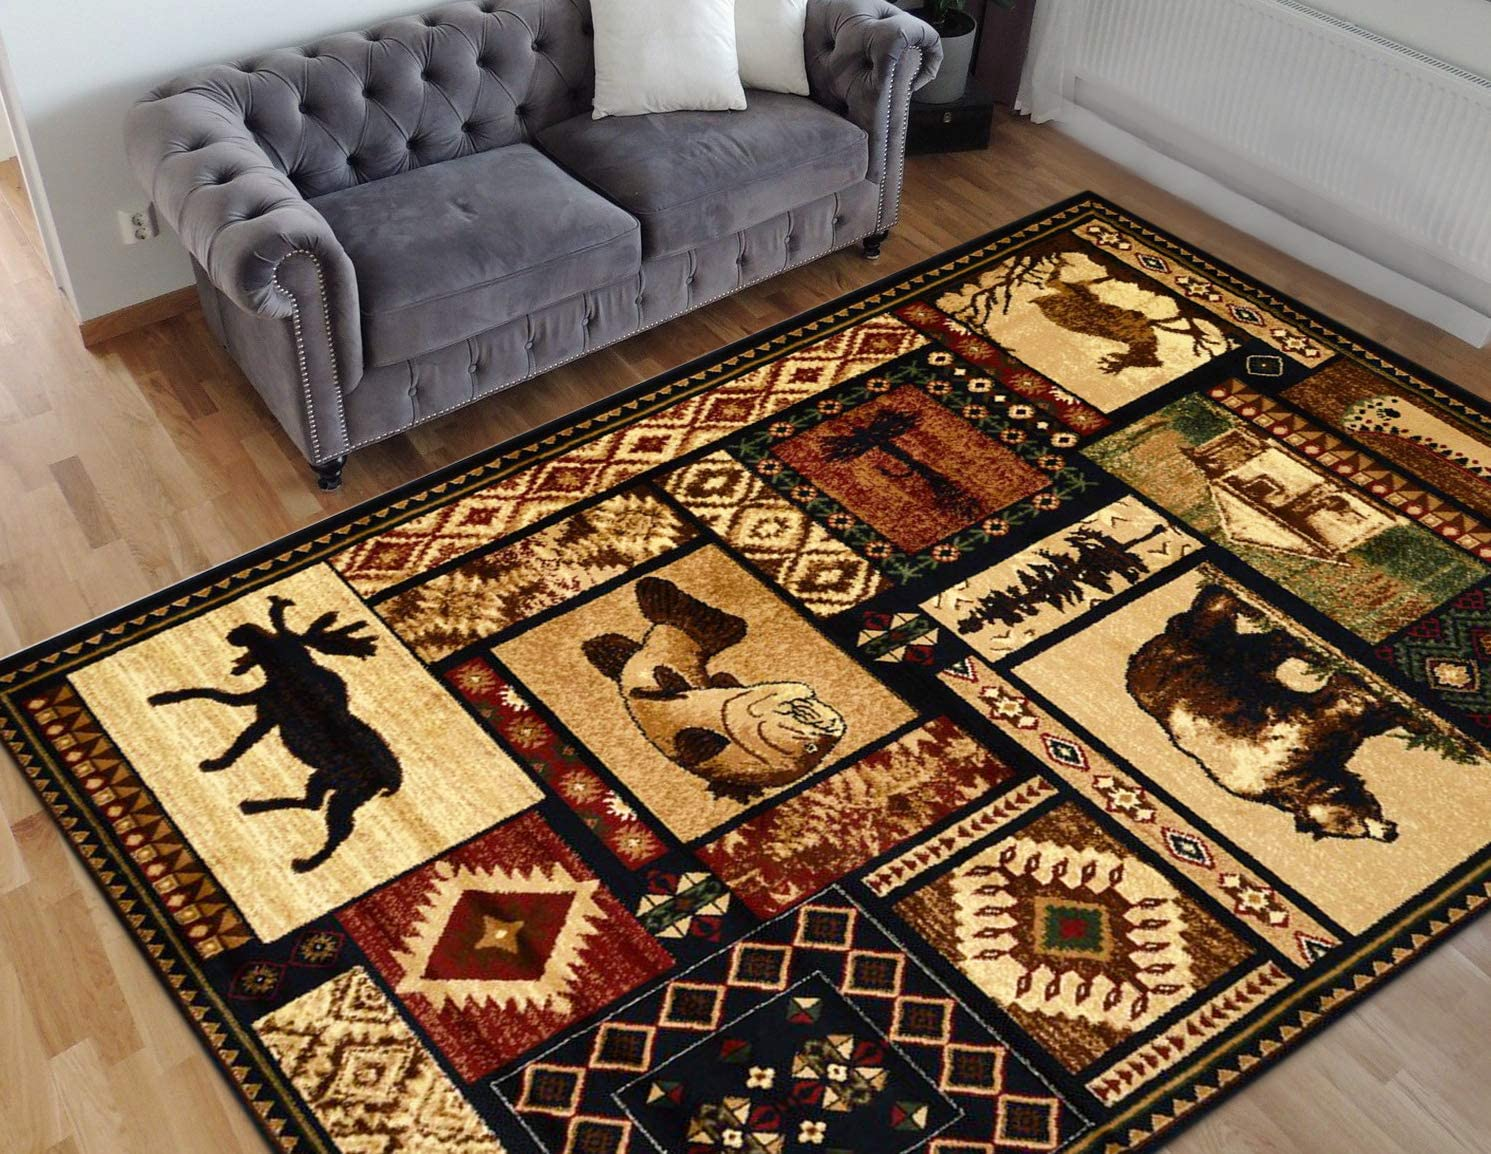 HR- Cabin Collection 906-Nature and Animals Area Rug 7 .5 by 10 .5 Contemporary Geometric Design Fish Moose Bear Lodge-Southwestern Design-Ivory Red Green and Multi